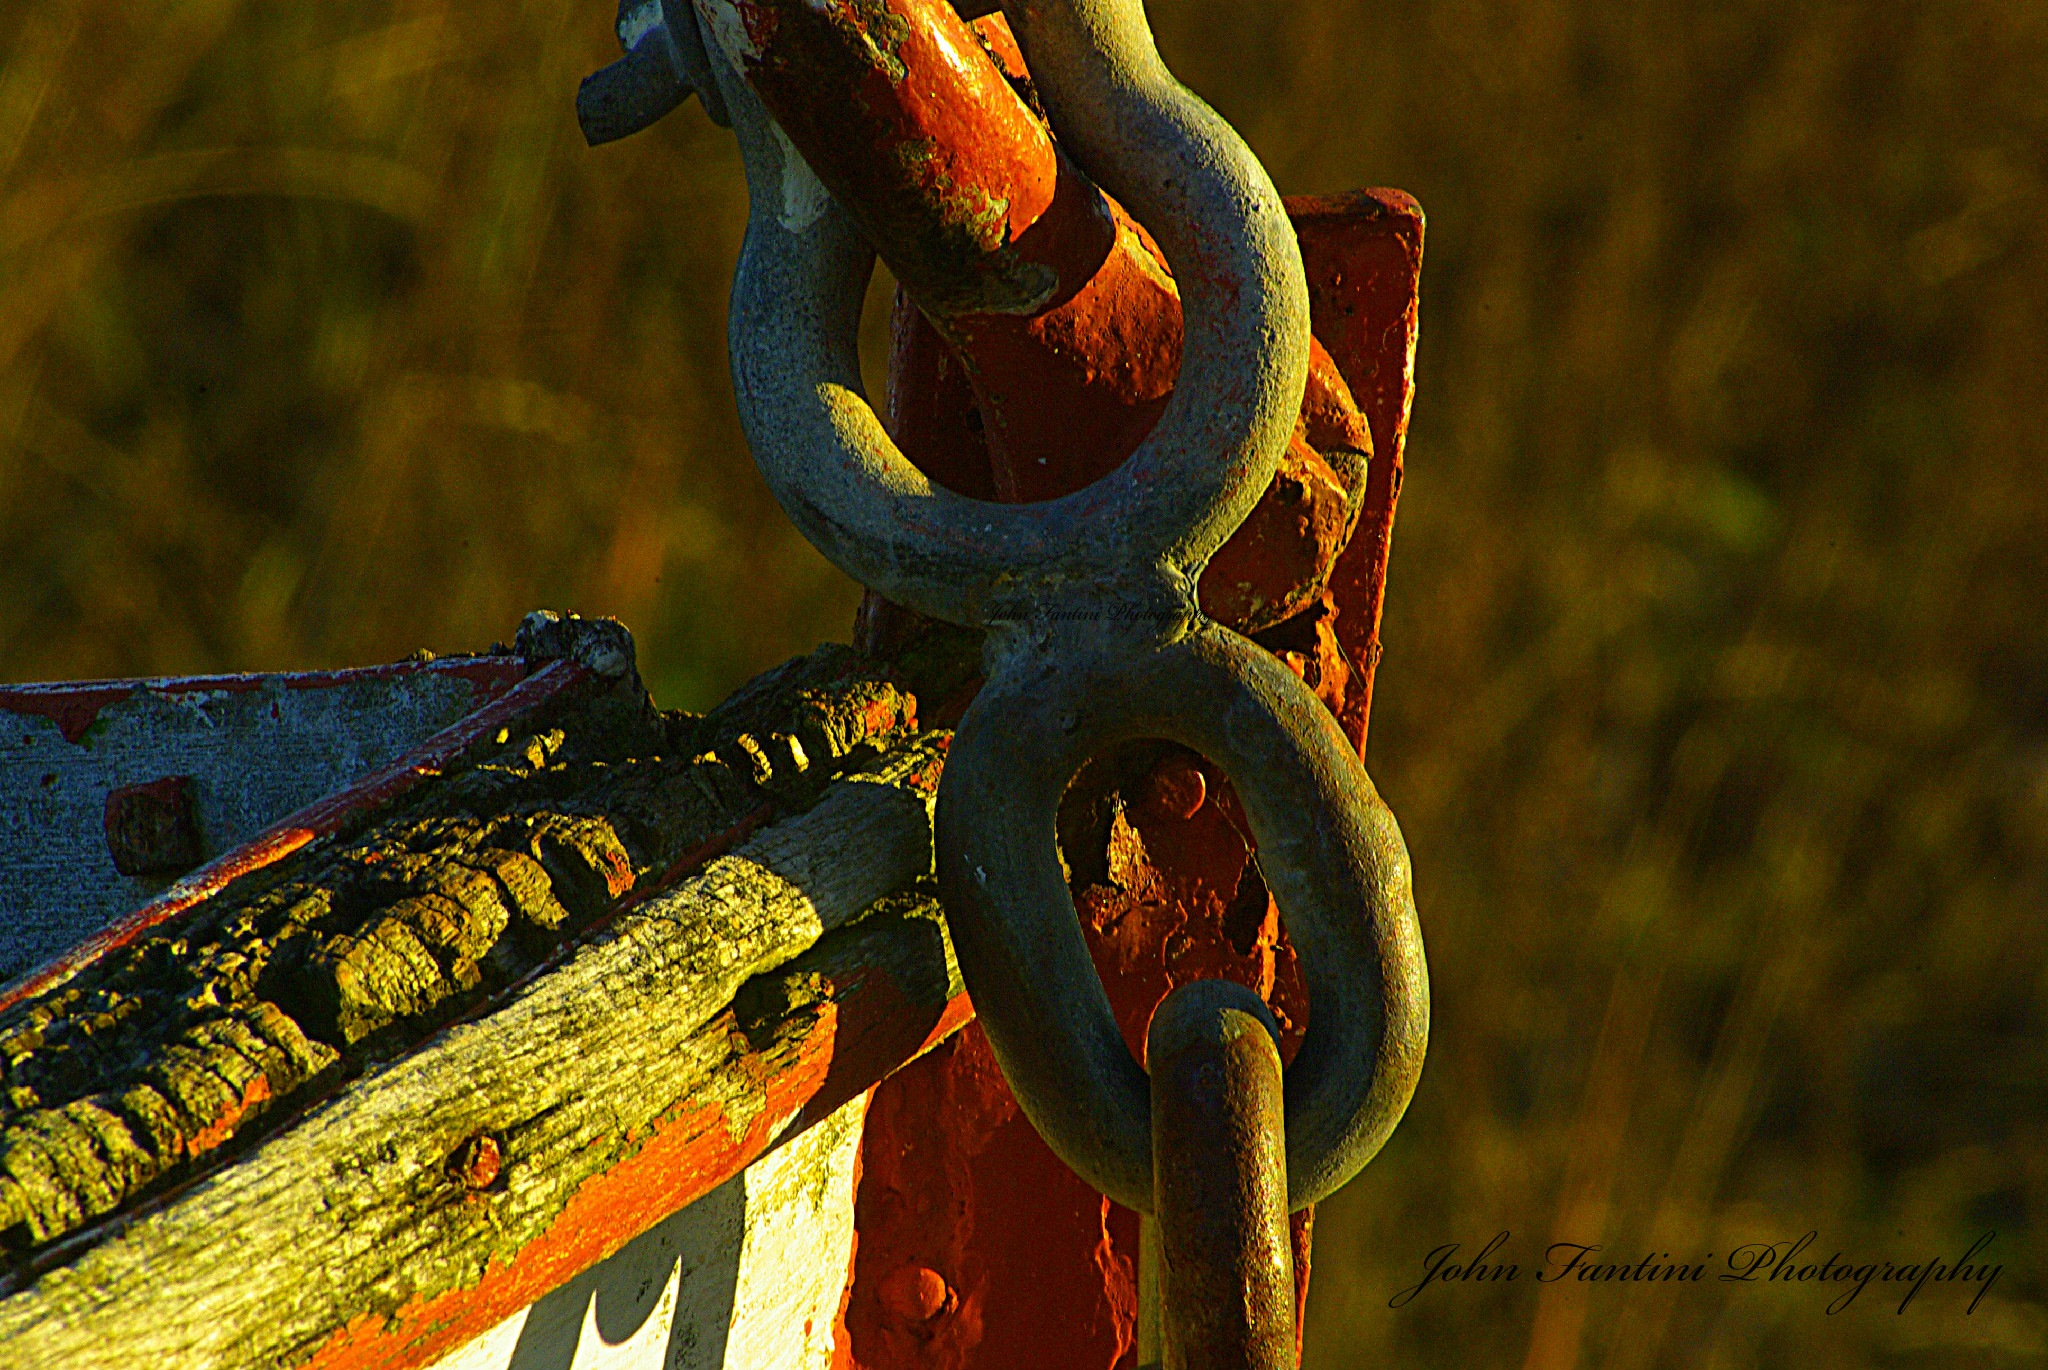 Chained by JohnFantiniPhotography